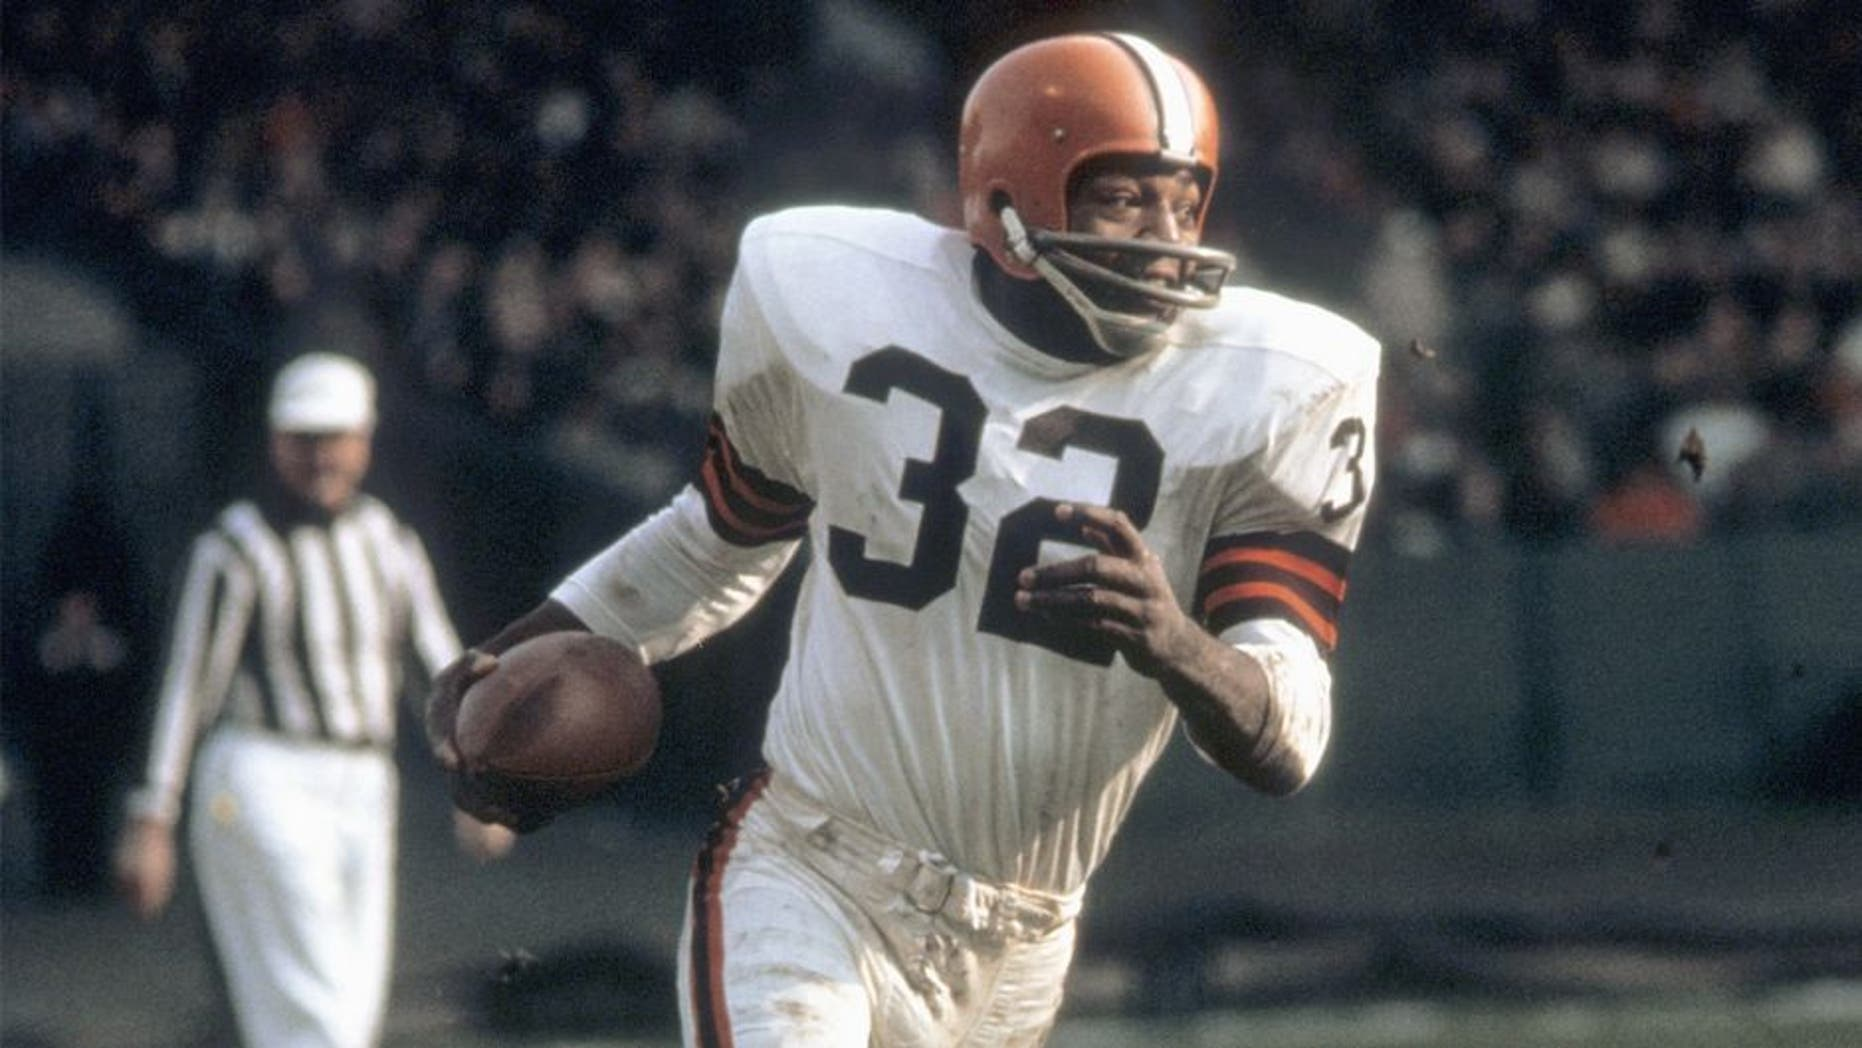 CLEVELAND, OH - 1960: Runningback Jim Brown #32 of the Cleveland Browns runs with the ball during a game in the 1960's at Municipal Stadium in Cleveland, Ohio. (Photo by: Tony Tomsic/Getty Images)